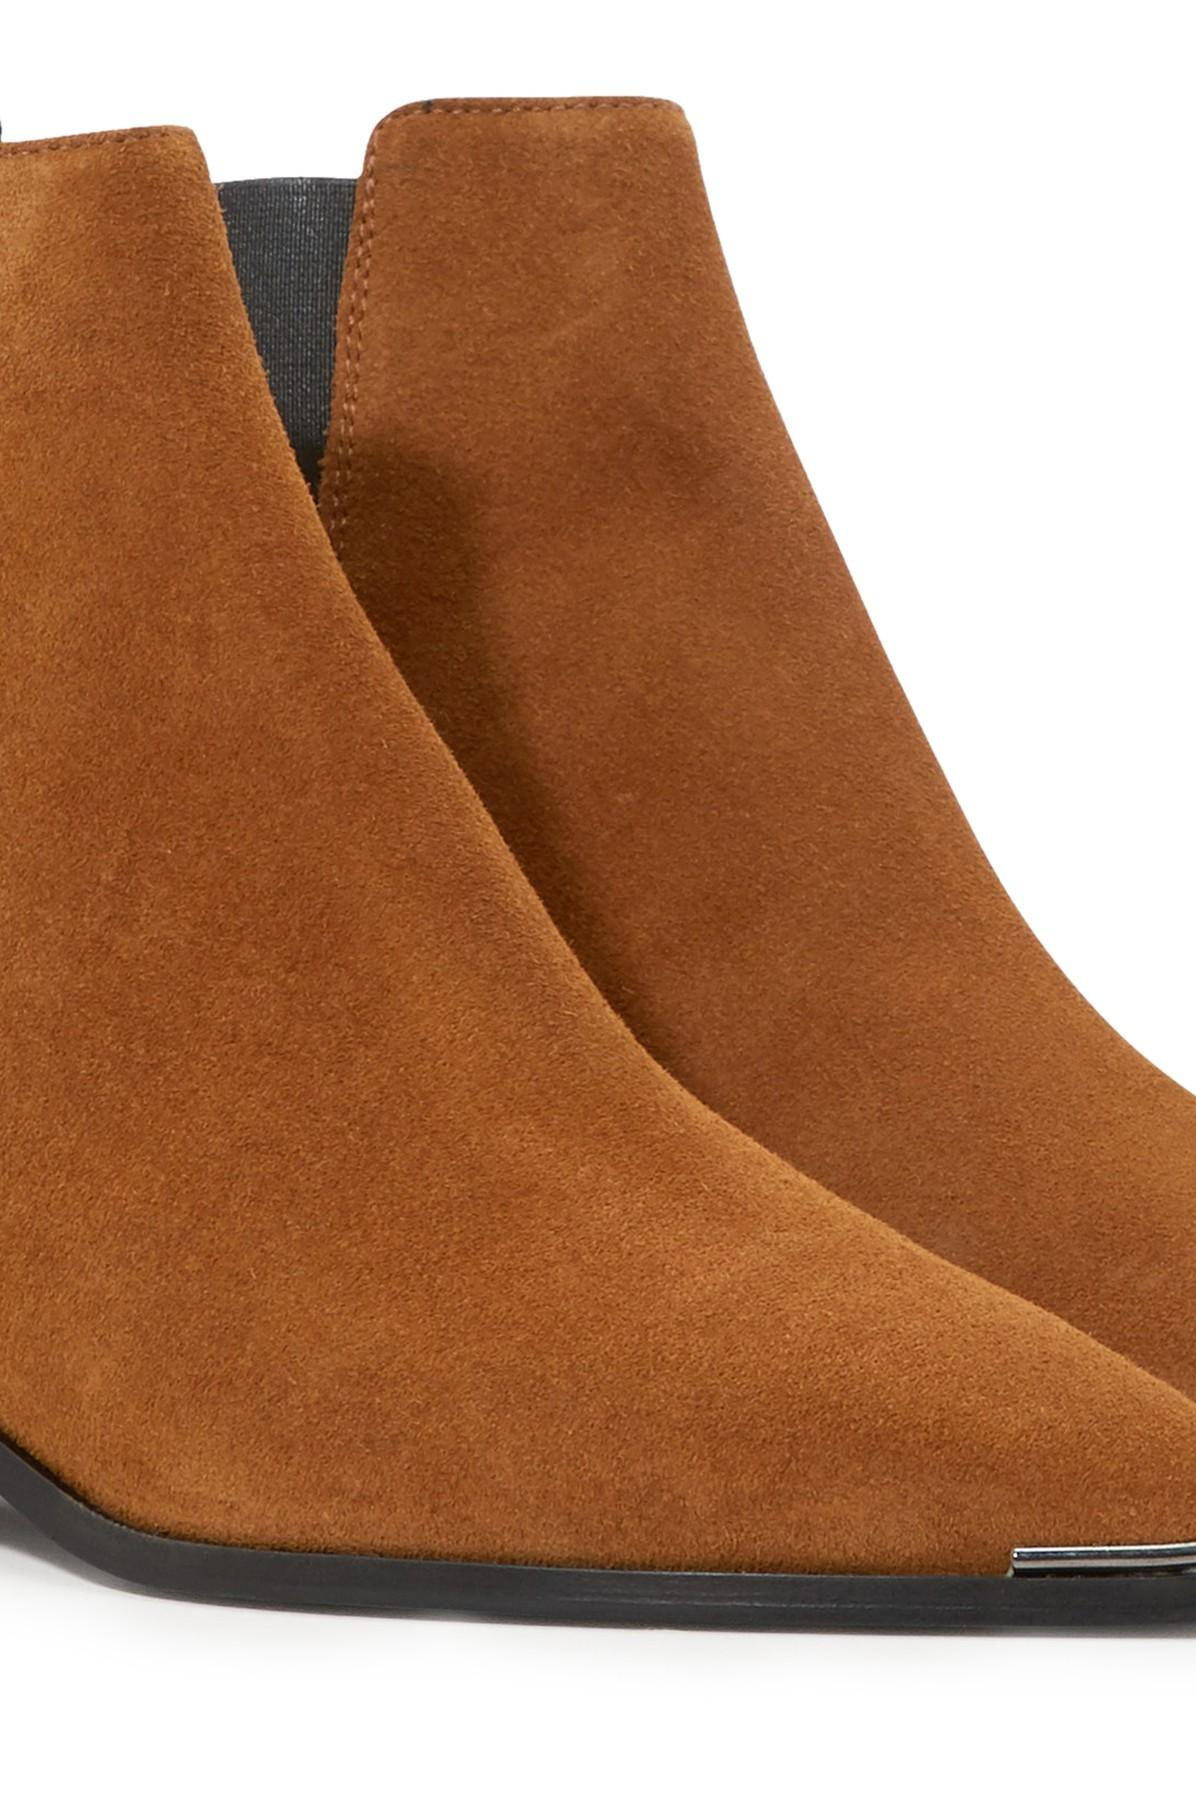 Acne Studios Jensen Ankle Boots in Taupe Grey (Brown)